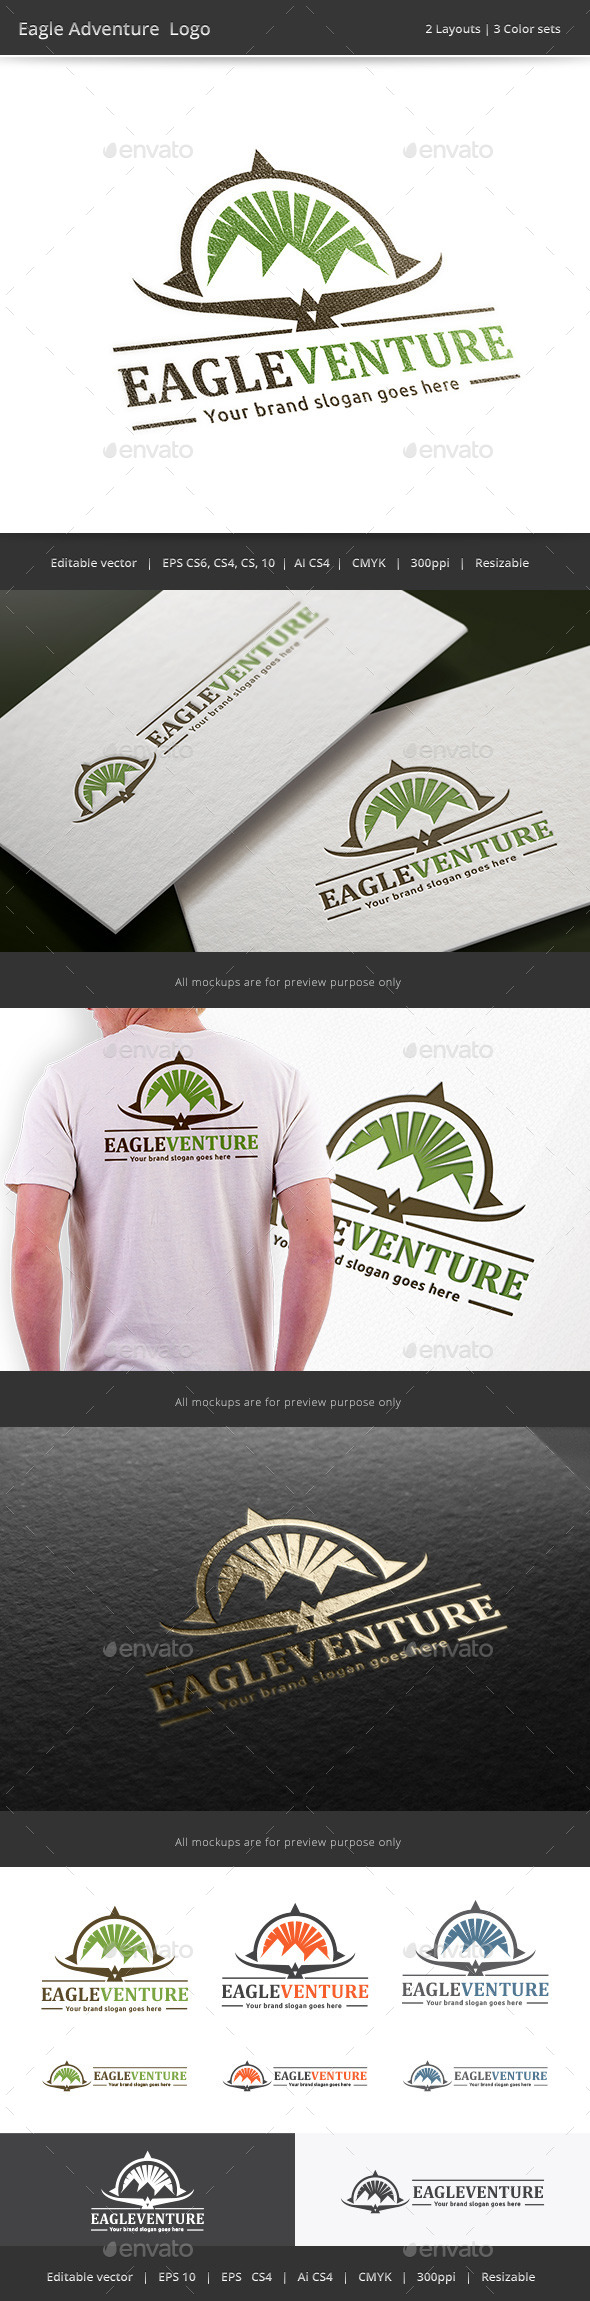 GraphicRiver Eagle Adventure Logo 9837570